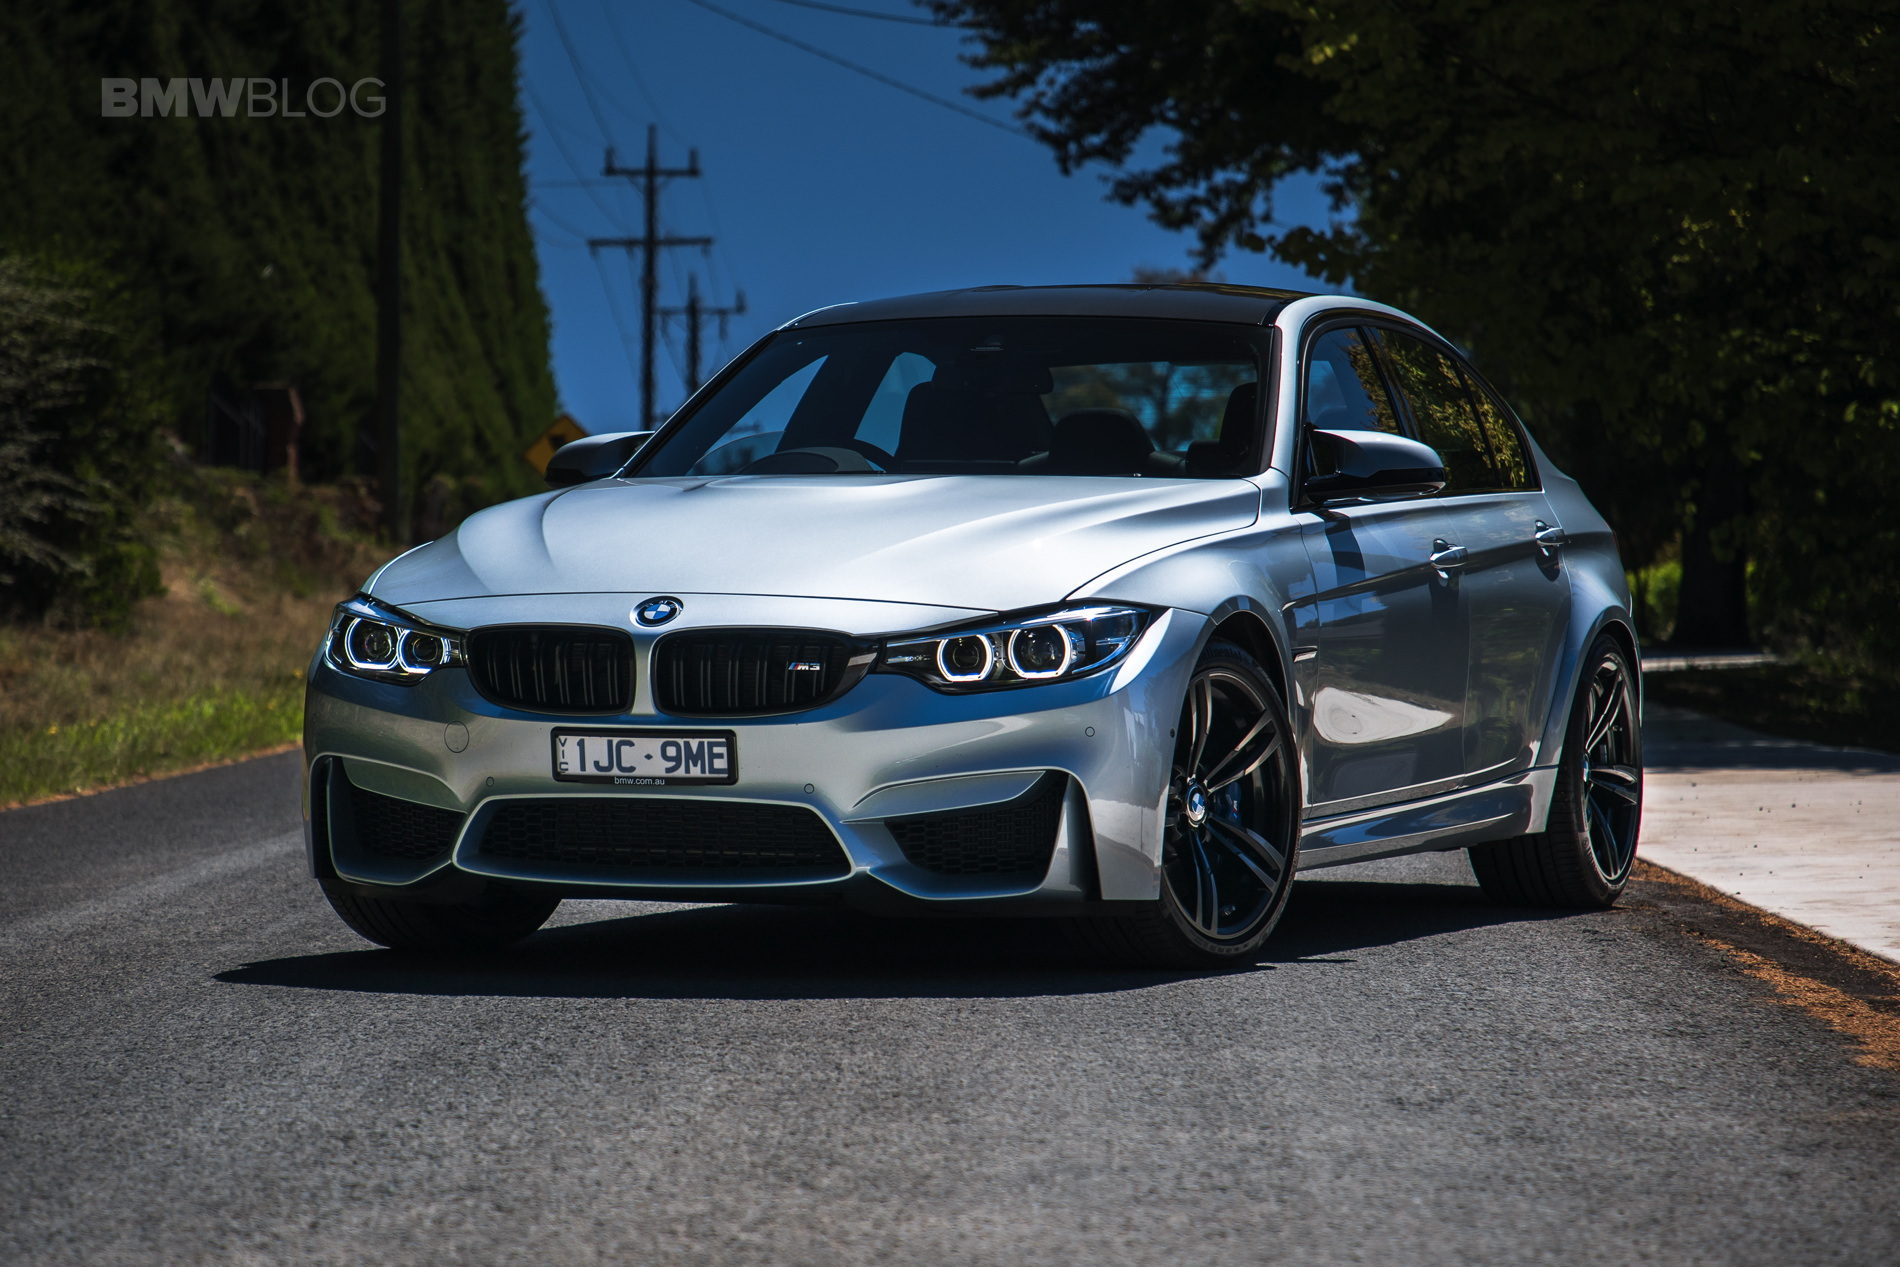 test drive: 2018 bmw m3 pure - the australian special edition